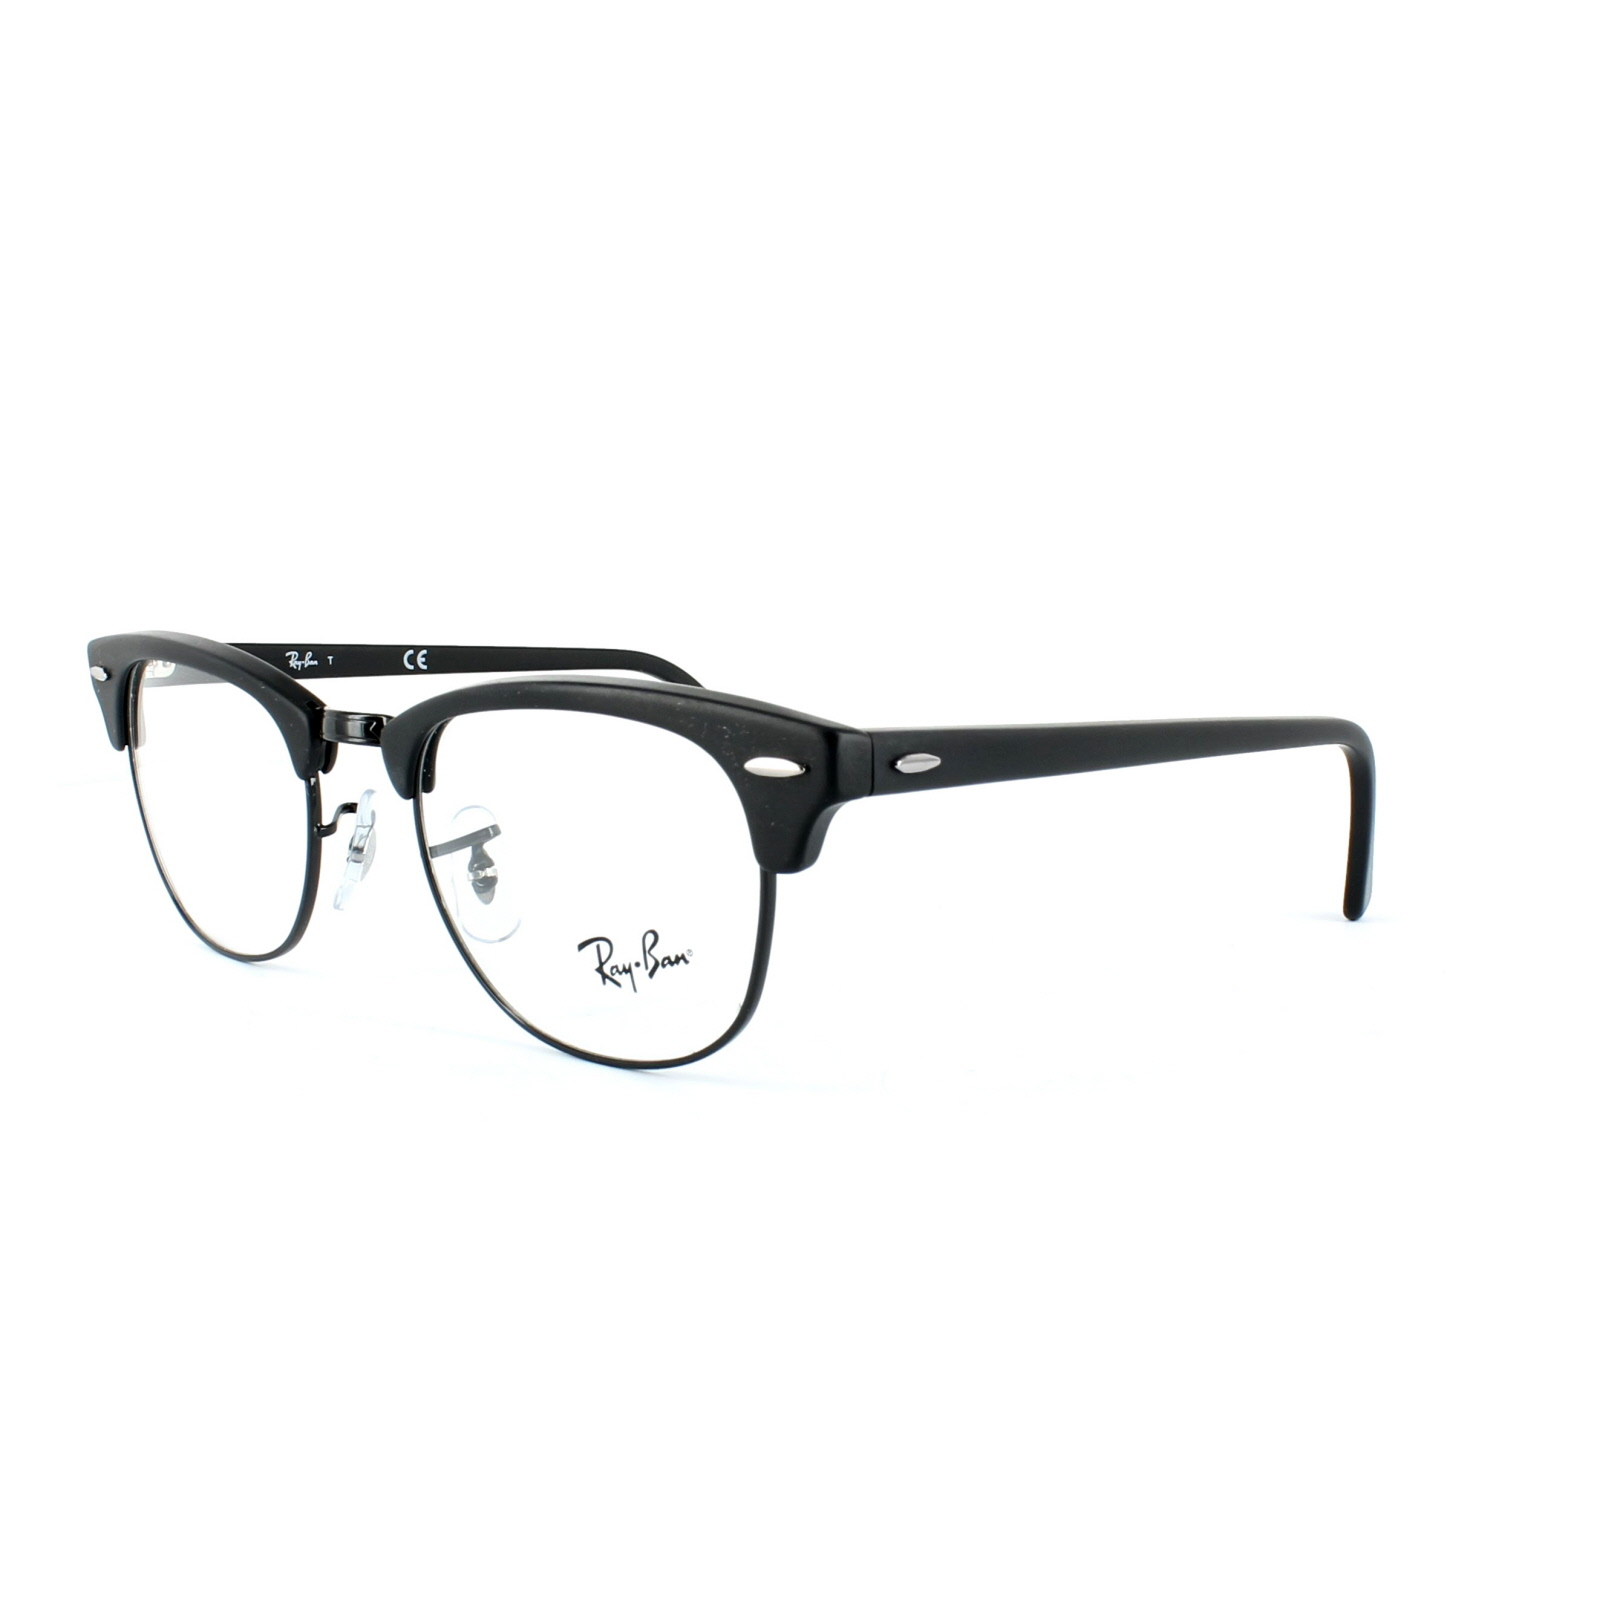 Ray Ban Clubmaster Glasses Frames : Ray-Ban Glasses Frames 5154 Clubmaster 2077 Matt Black eBay